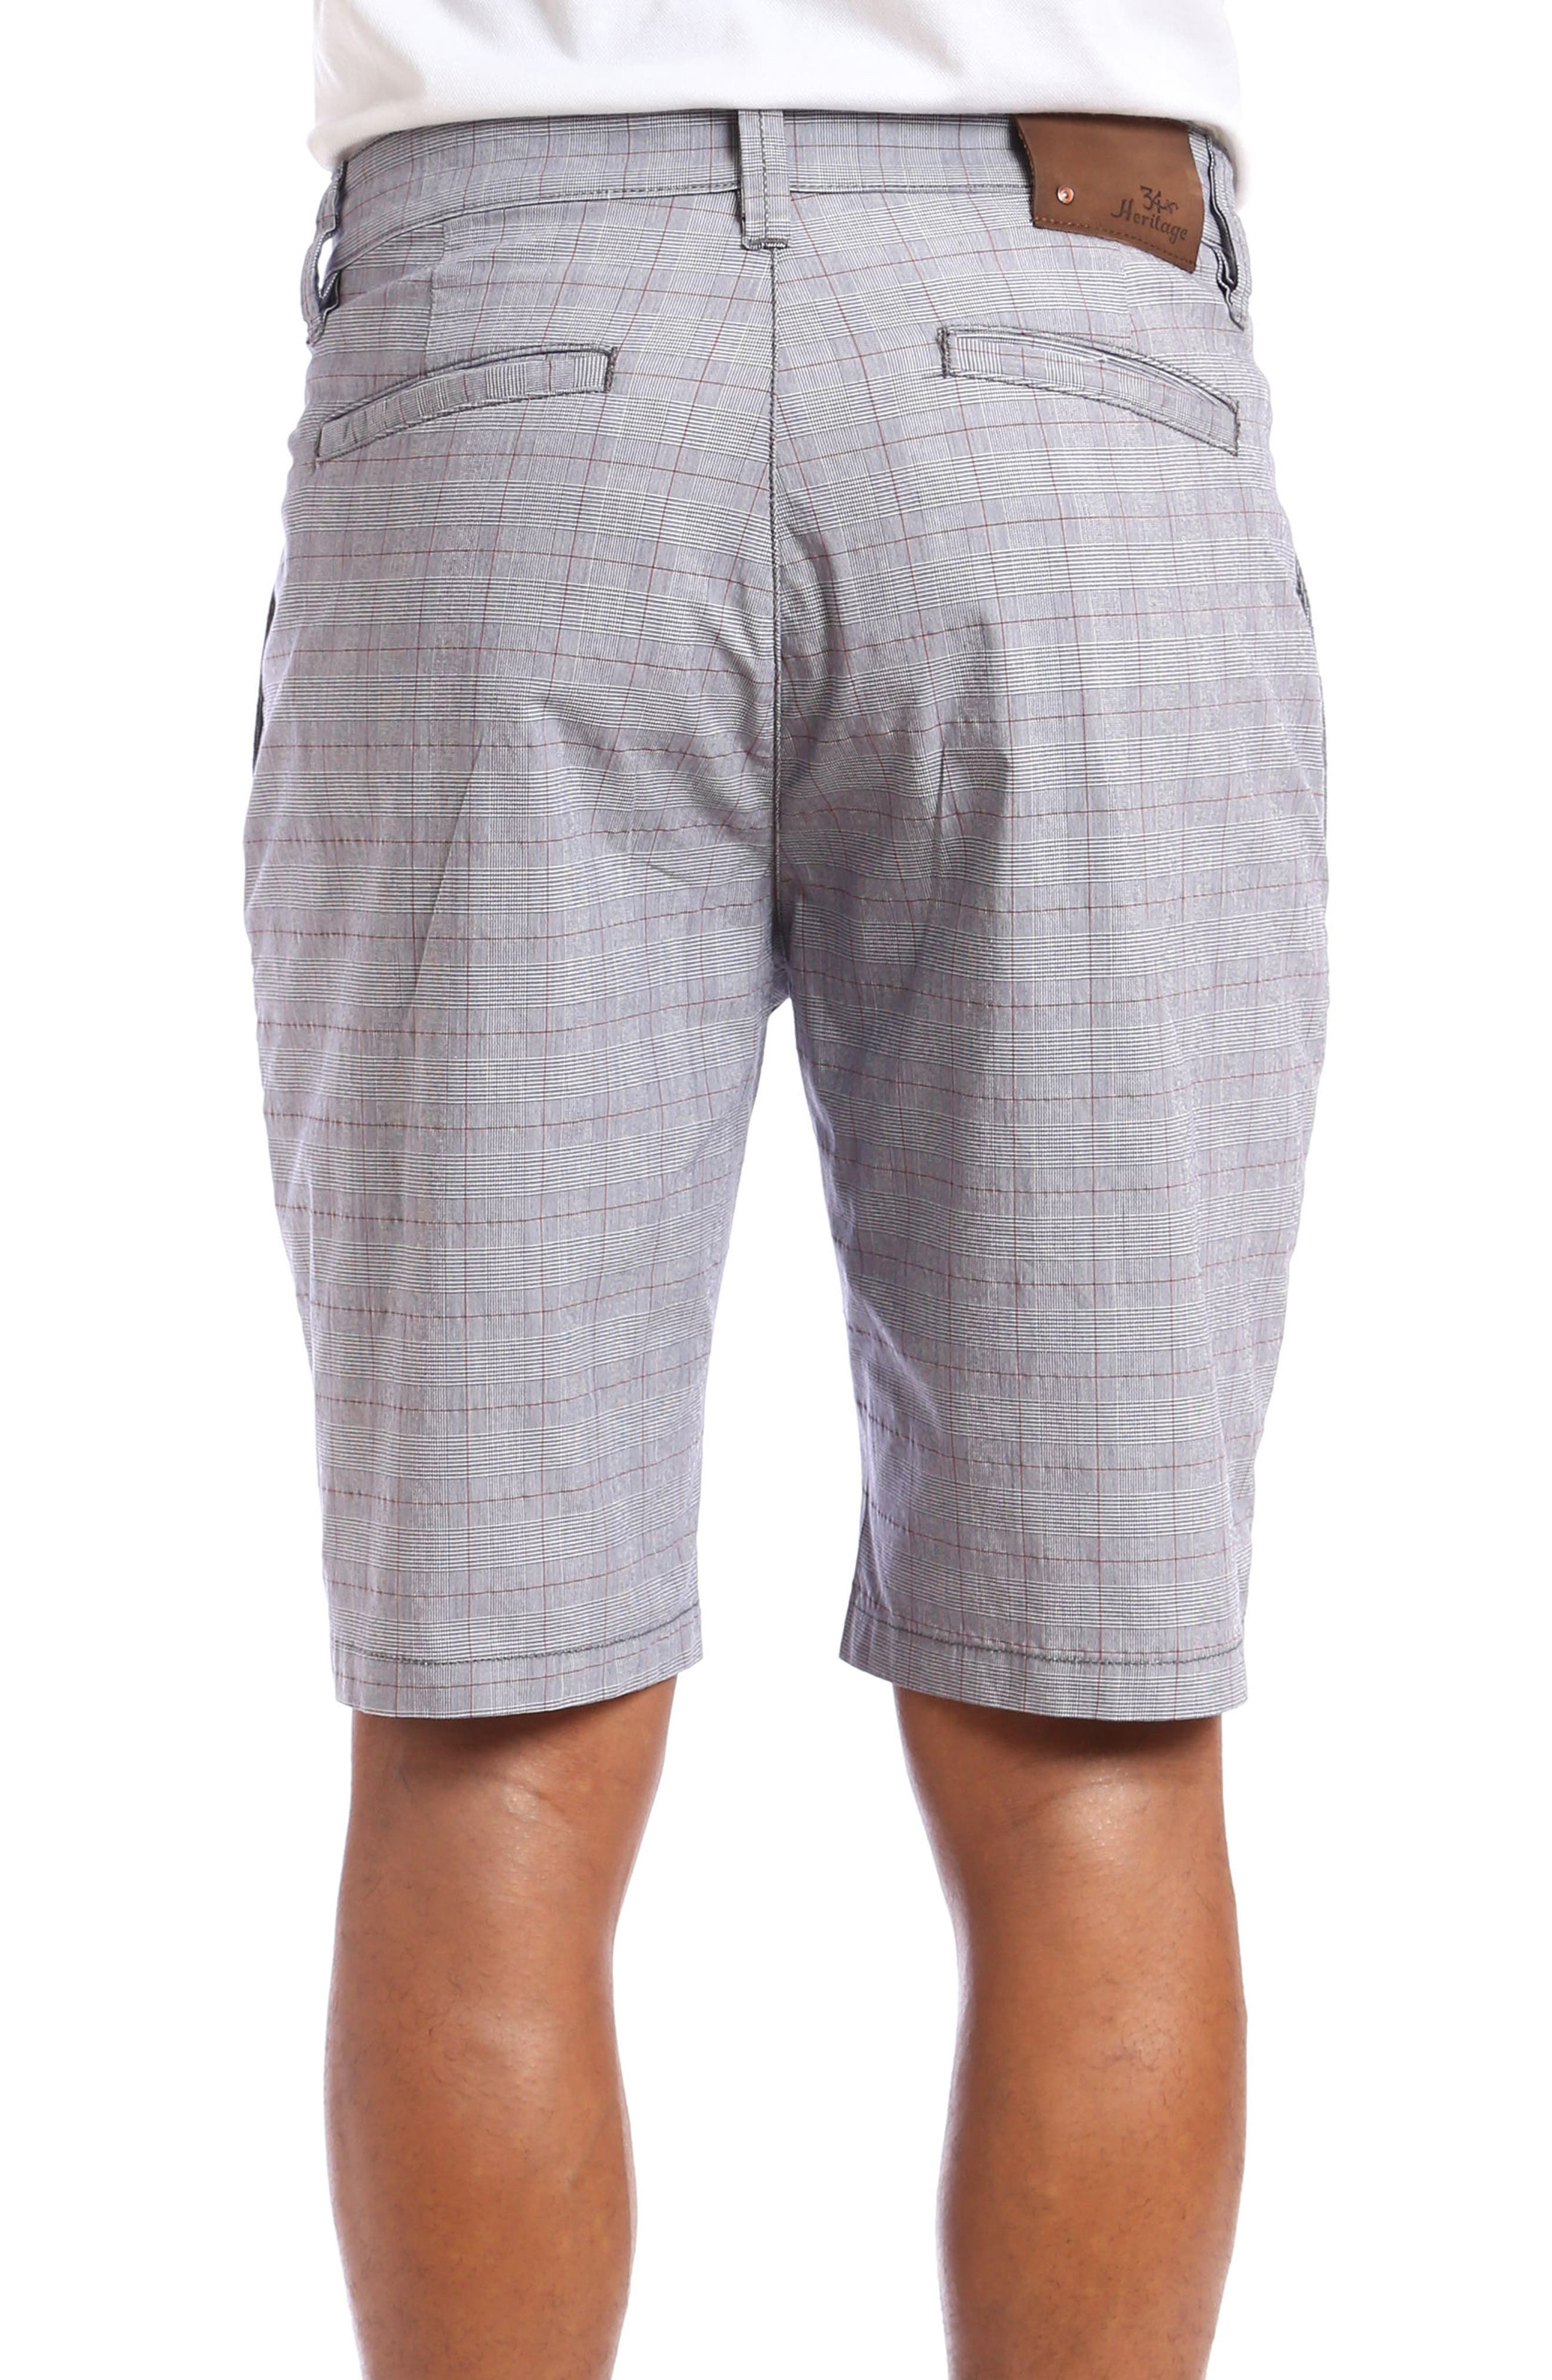 Nevada Twill Shorts,                             Alternate thumbnail 2, color,                             Grey Plaid